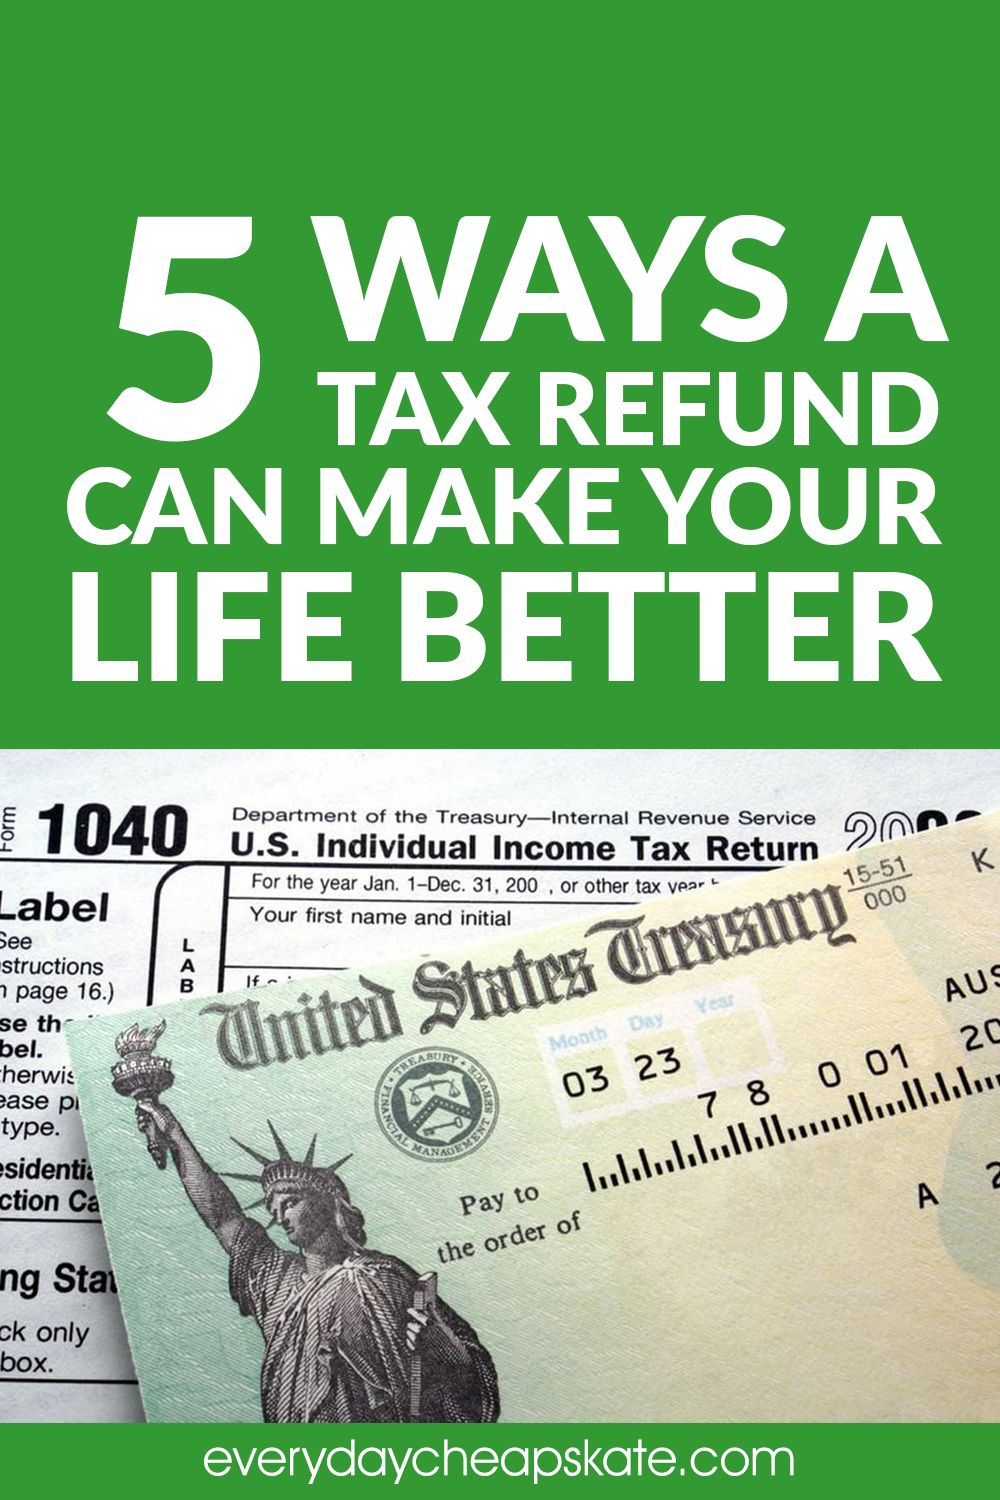 5 ways a tax refund can make your life better in 2020